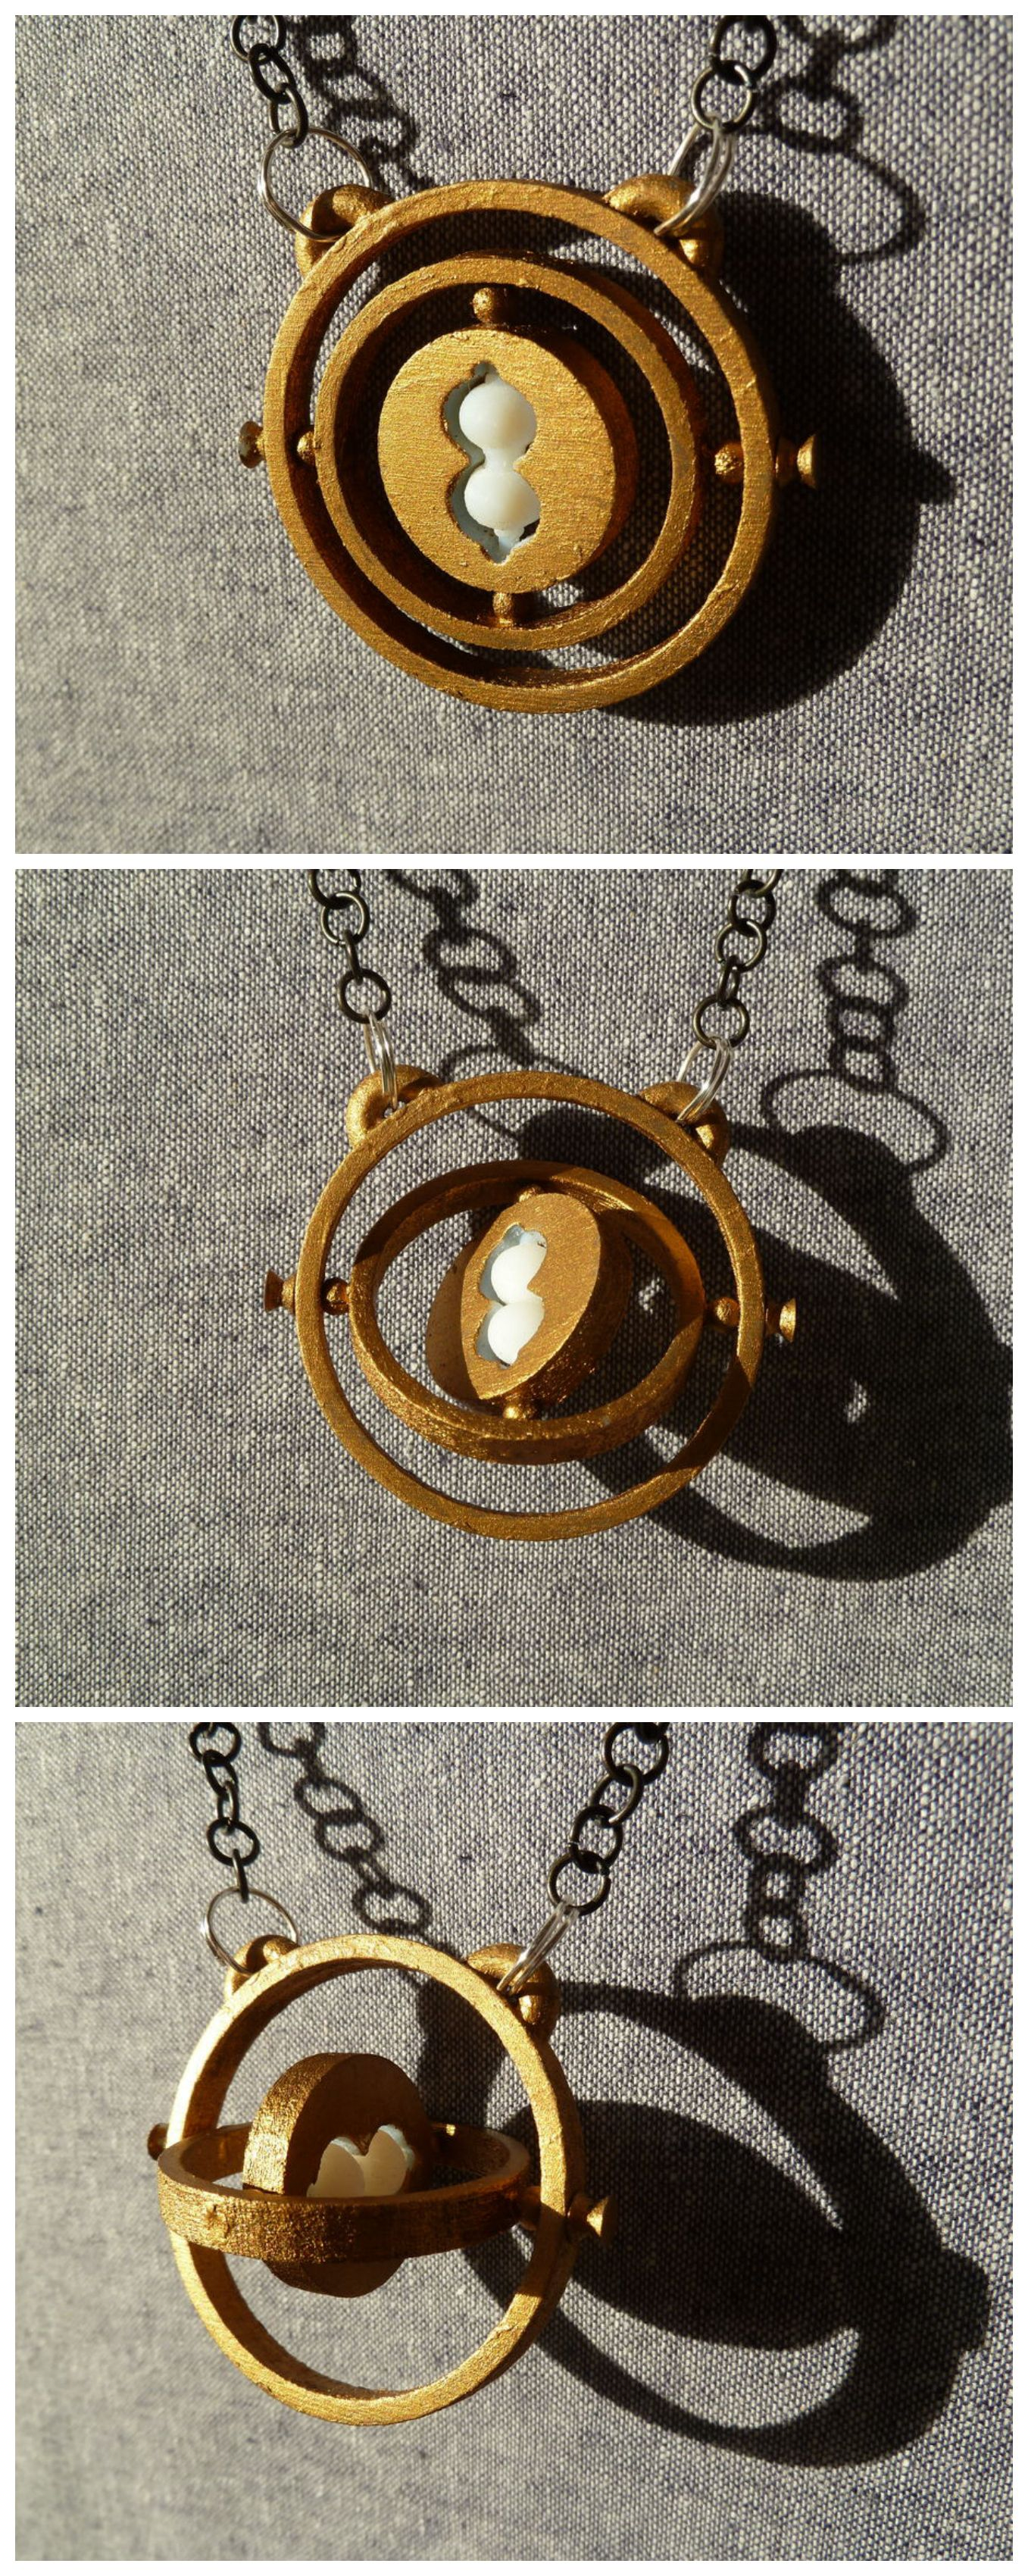 3D Printed Time Turner Necklace Pendant #Harry_Potter #jewelry #Hermione